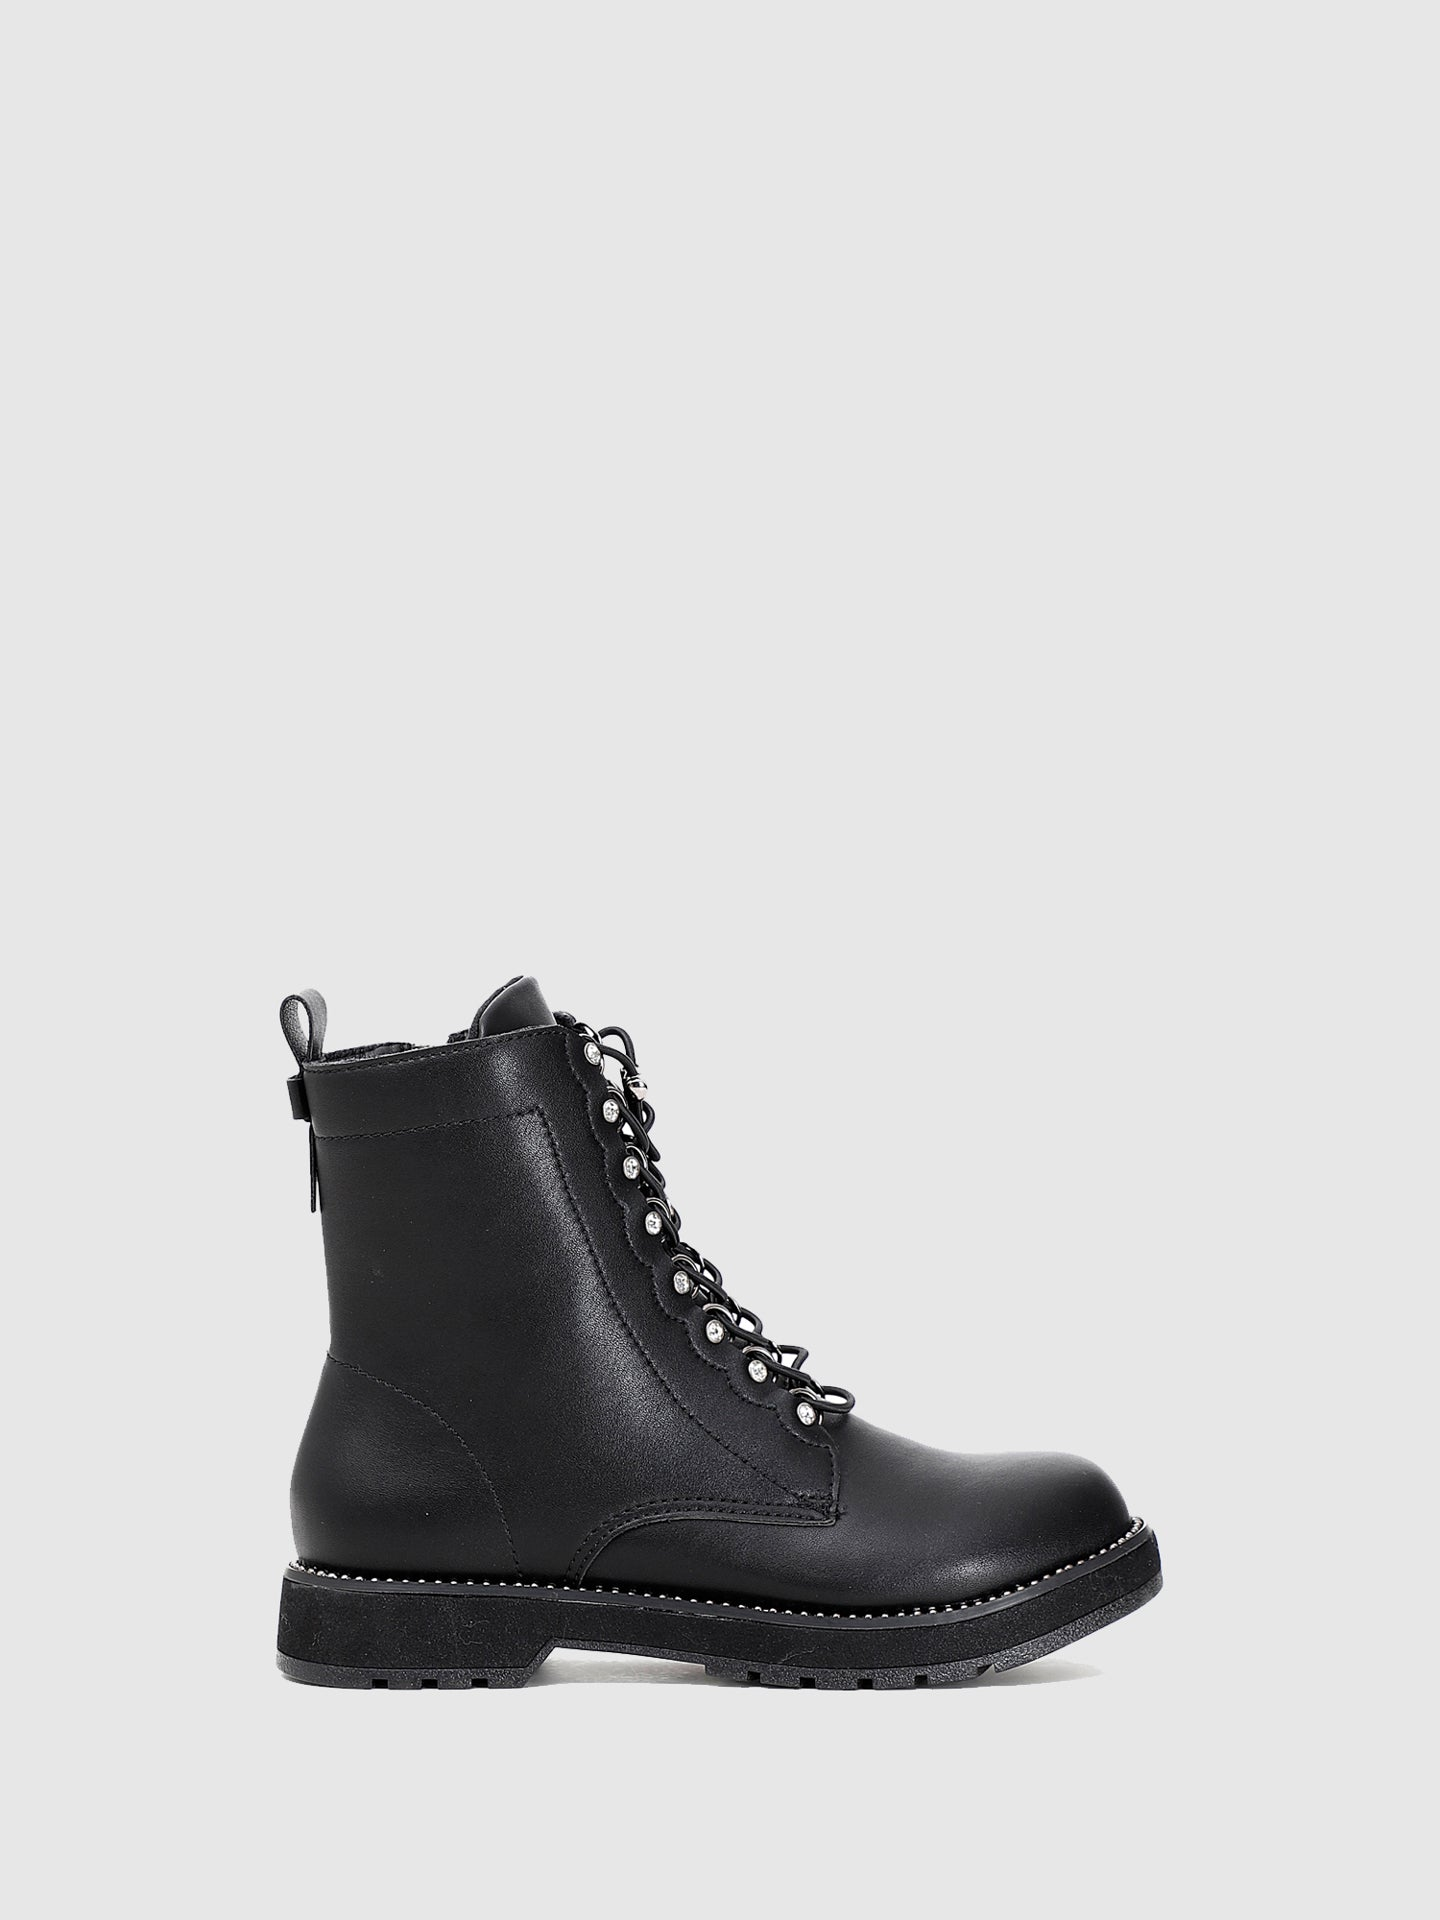 Cafè Noir Black Lace-up Boots